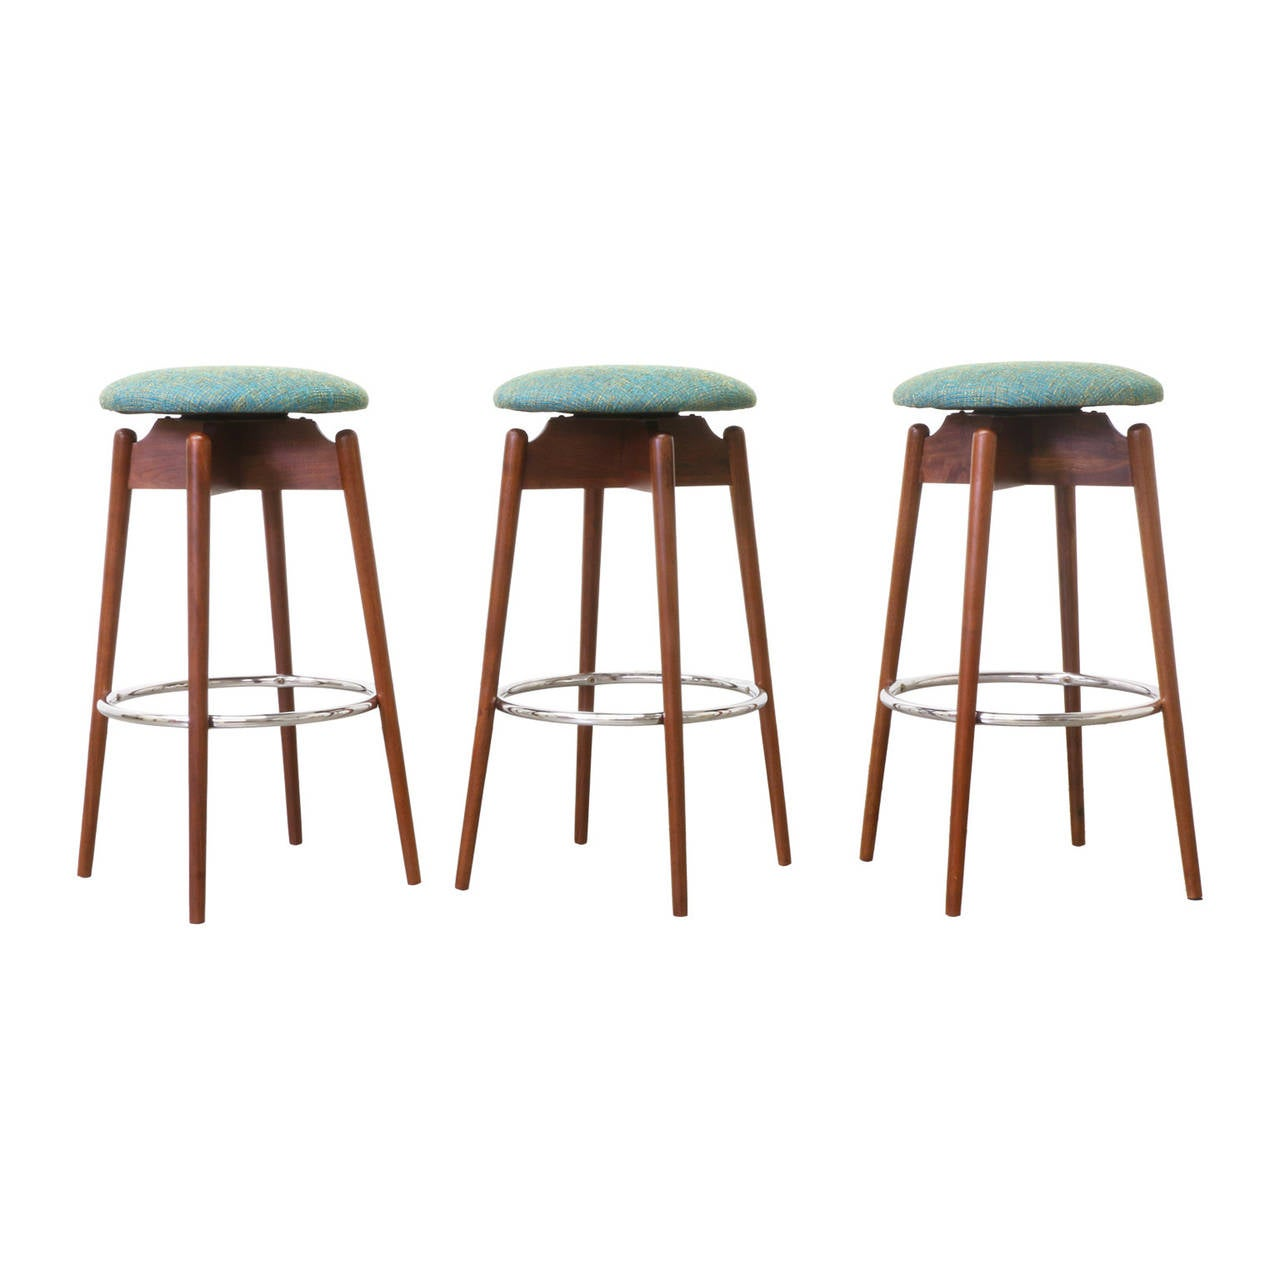 Mid Century Modern Walnut Sculpted Bar Stools at 1stdibs : 2l from www.1stdibs.com size 1280 x 1280 jpeg 67kB